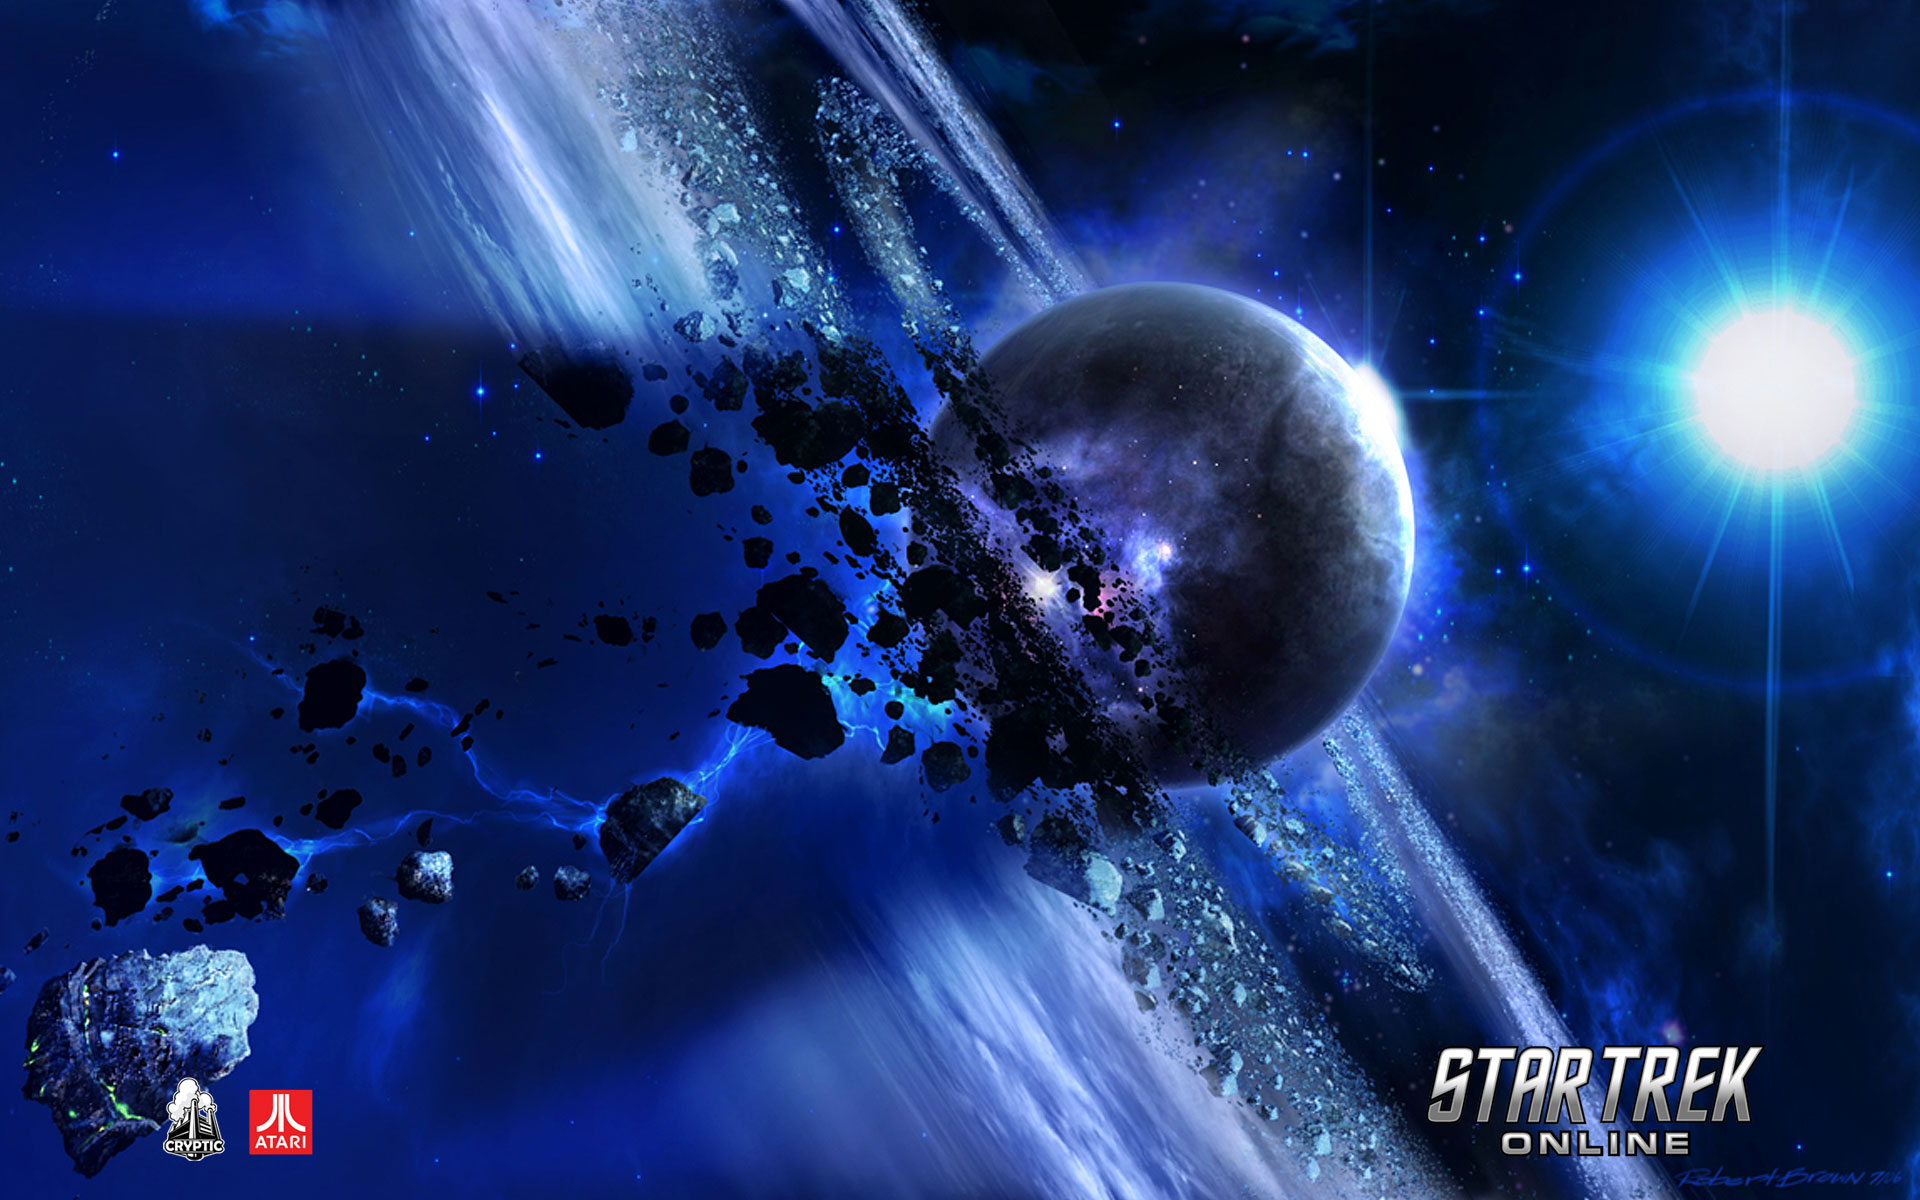 trek wallpapers star cool mac wallpaper photo online 1920x1200